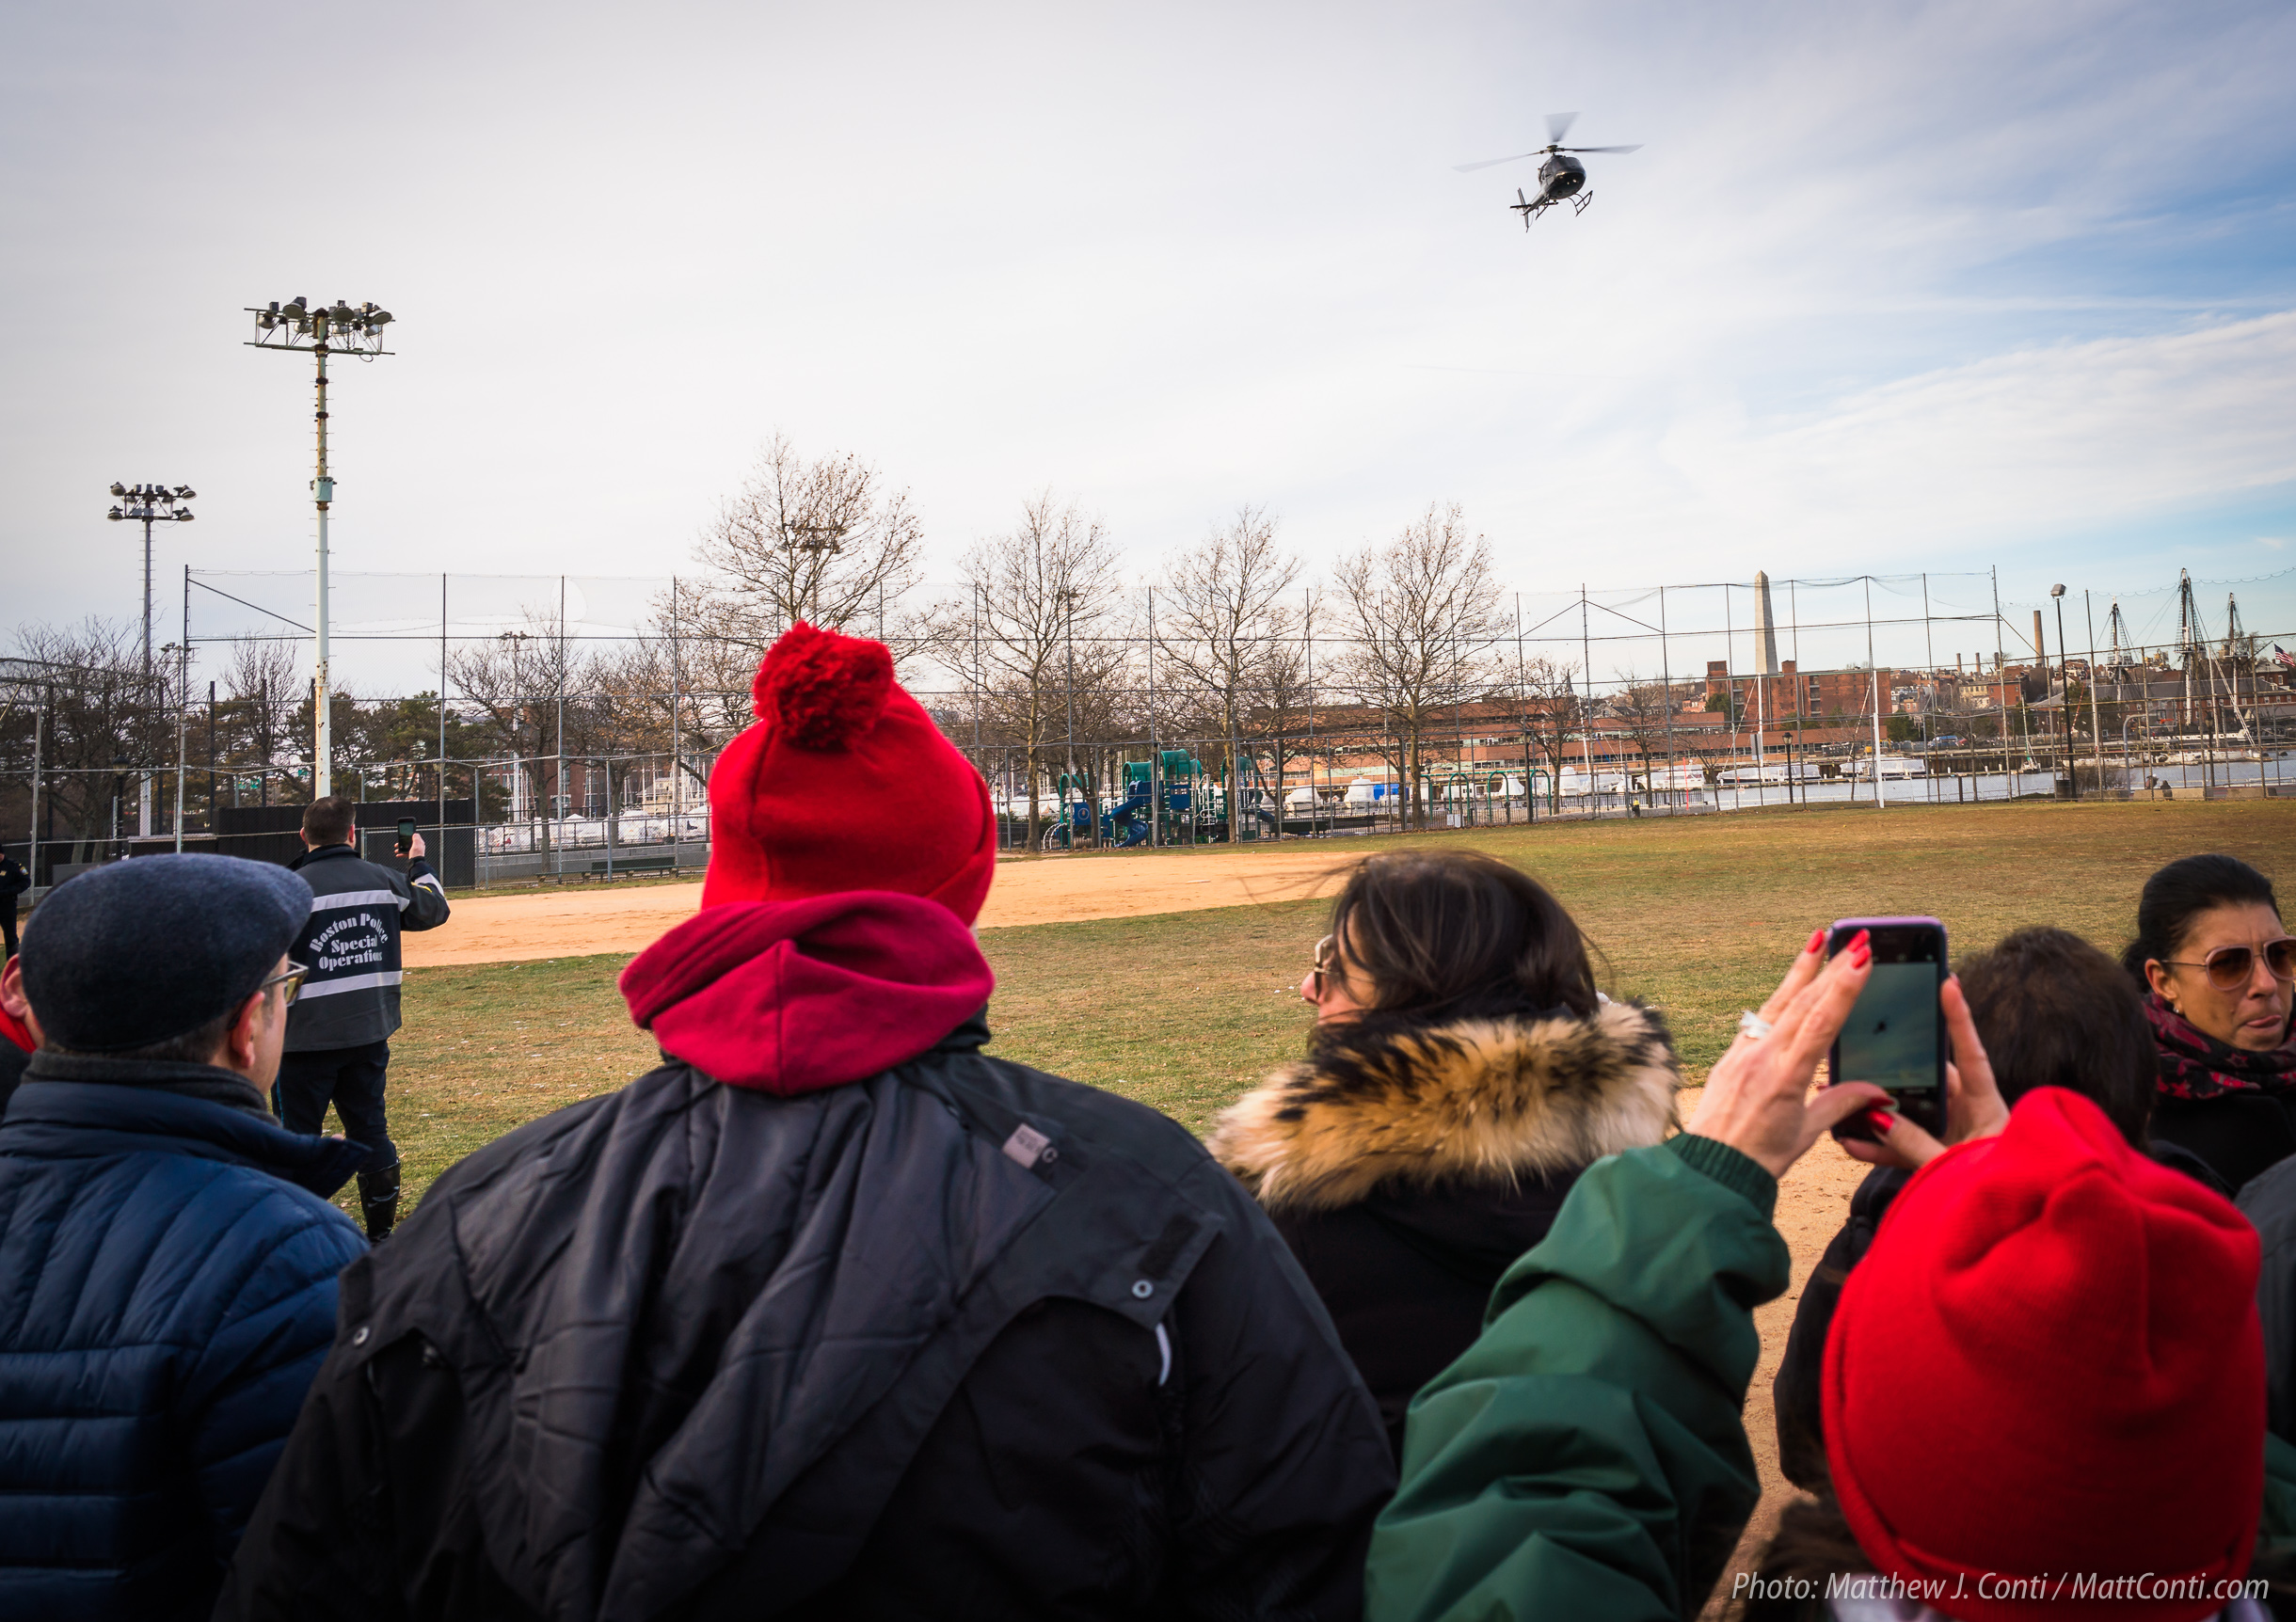 Tradition of Santa Claus Arriving by Helicopter Continues in